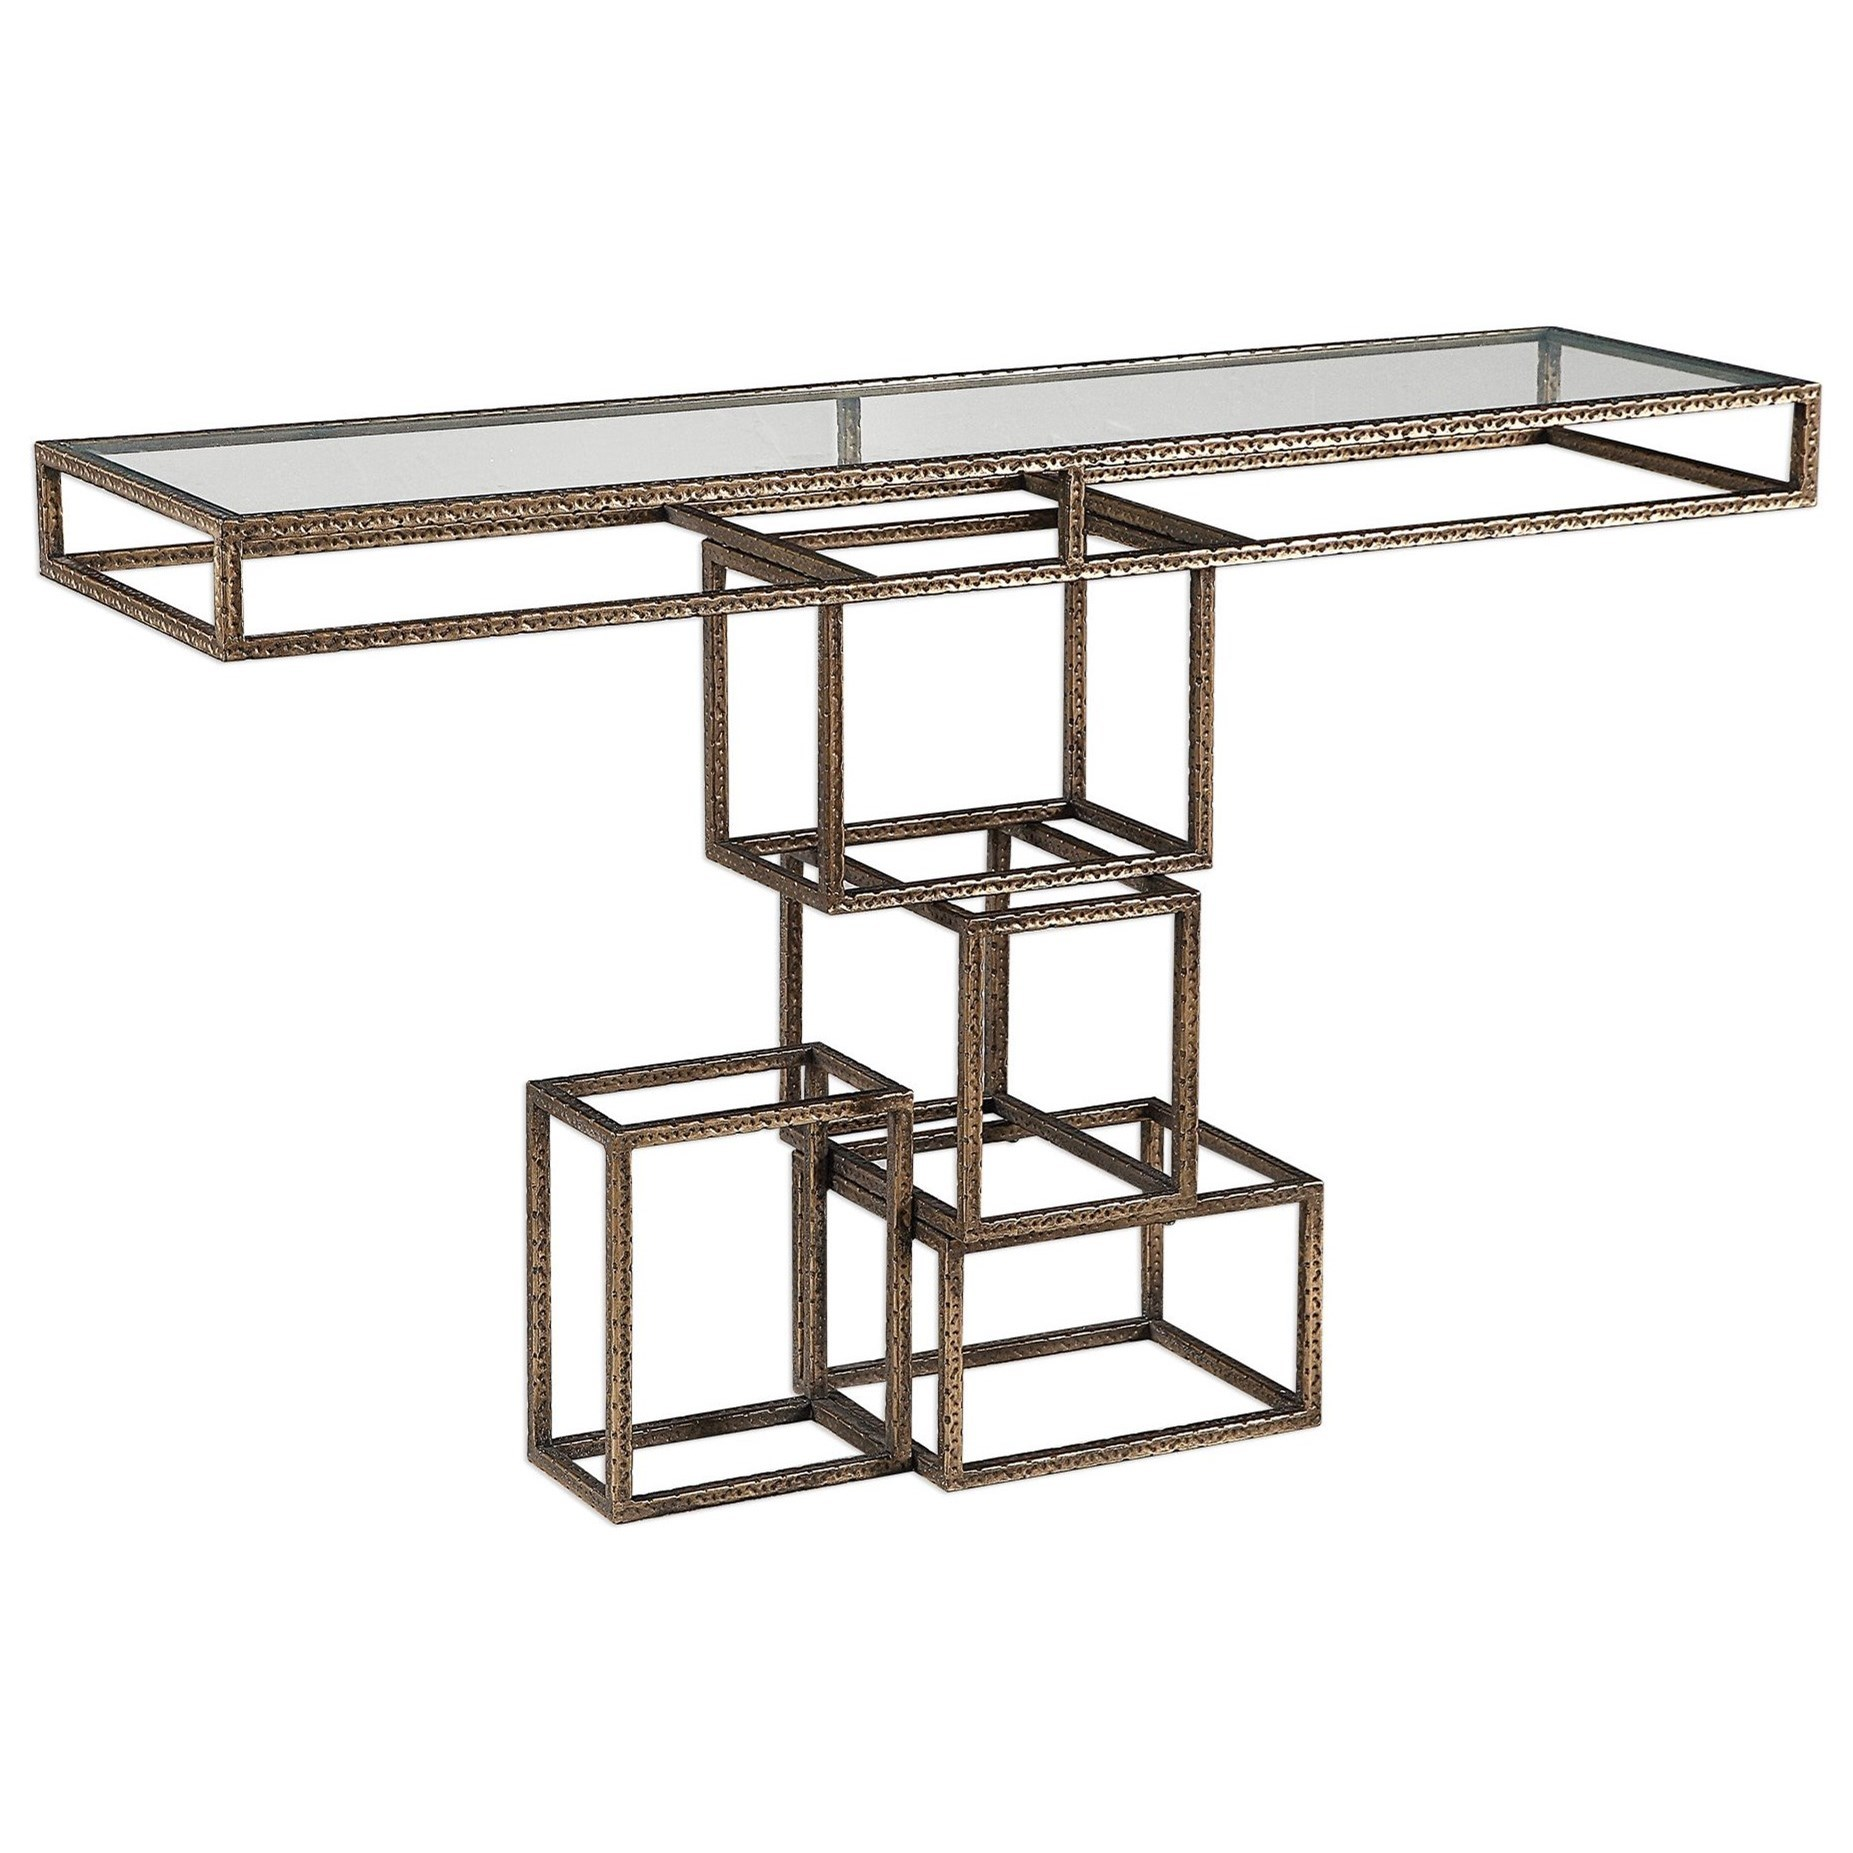 Accent Furniture - Occasional Tables Ruslan Bronze Console Table by Uttermost at Dream Home Interiors